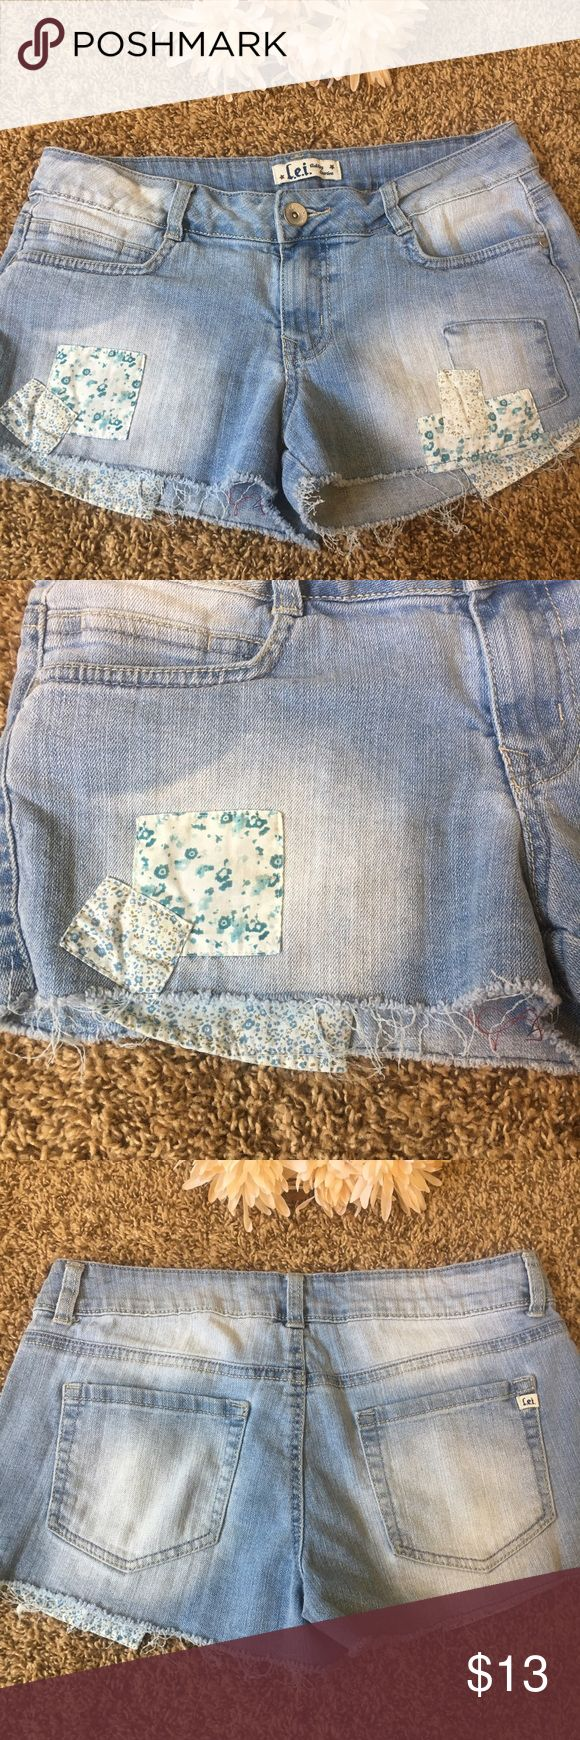 l.e.i. Ashley Lowrise Patchwork Cutoff Shorts These l.e.i. Ashley Lowrise Patchwork Cutoff Shorts are in excellent preloved condition. They are Juniors size 9 Regular. They have adorable quilted patch work and peep-show pockets in a matching floral print! Perfect shorts for the season! l.e.i. Shorts Jean Shorts